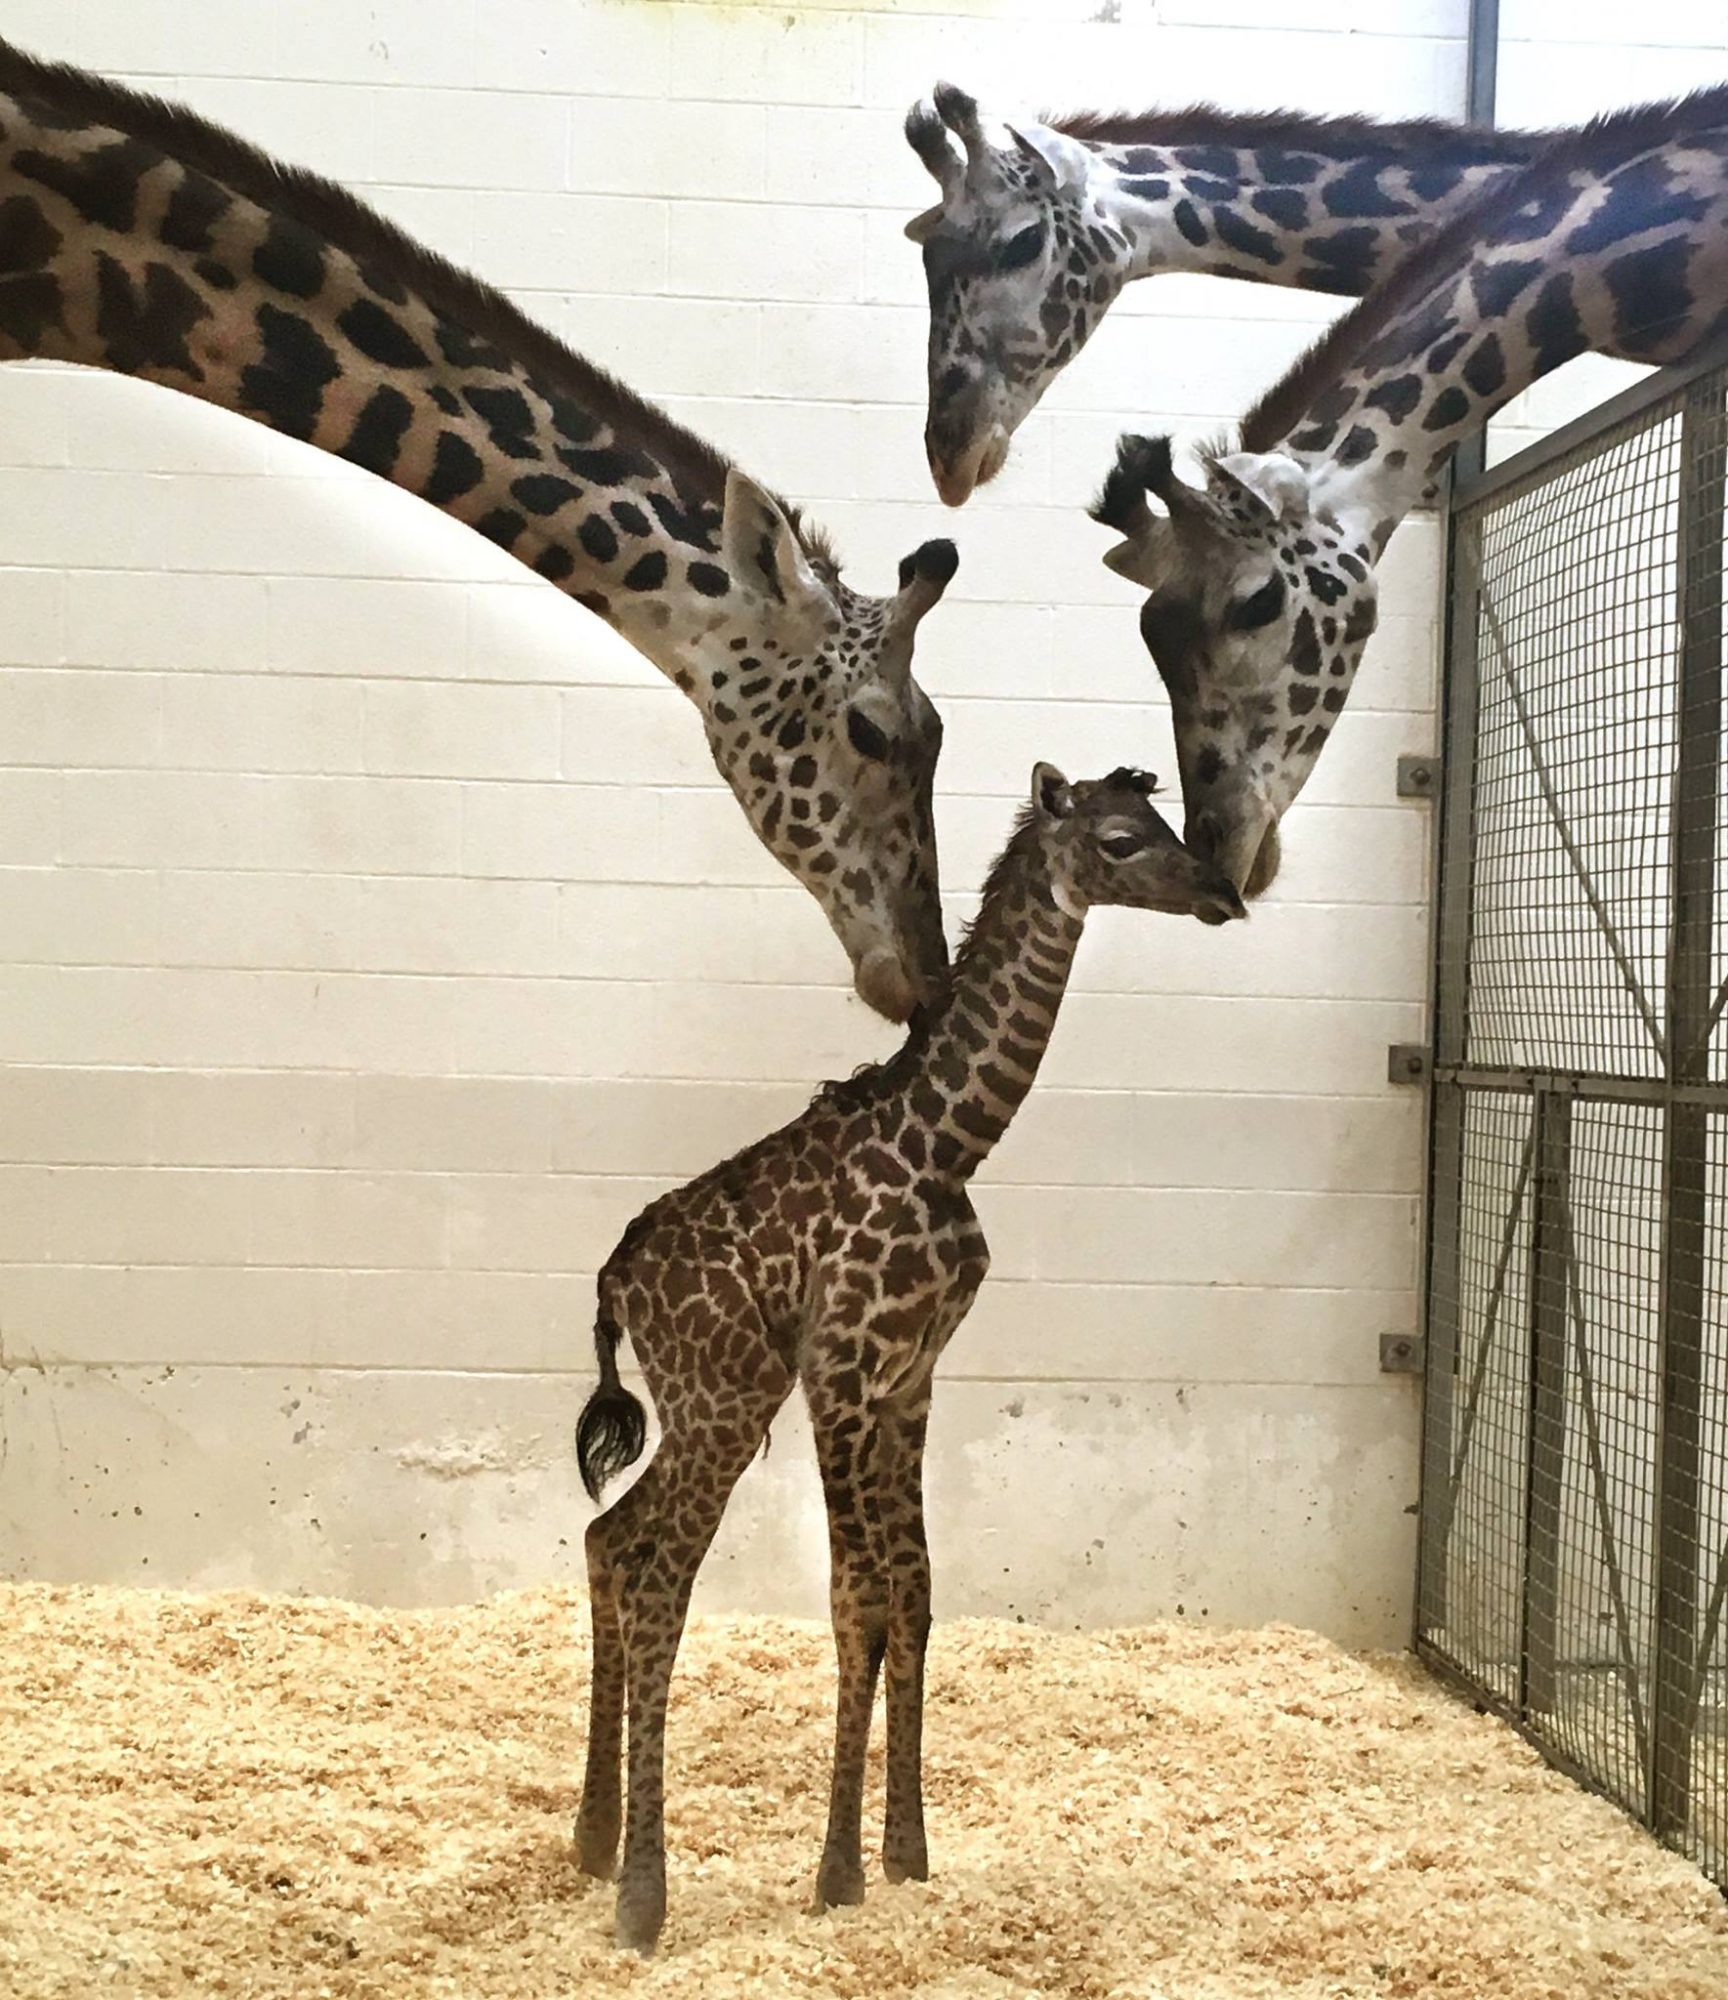 baby giraffe and mom